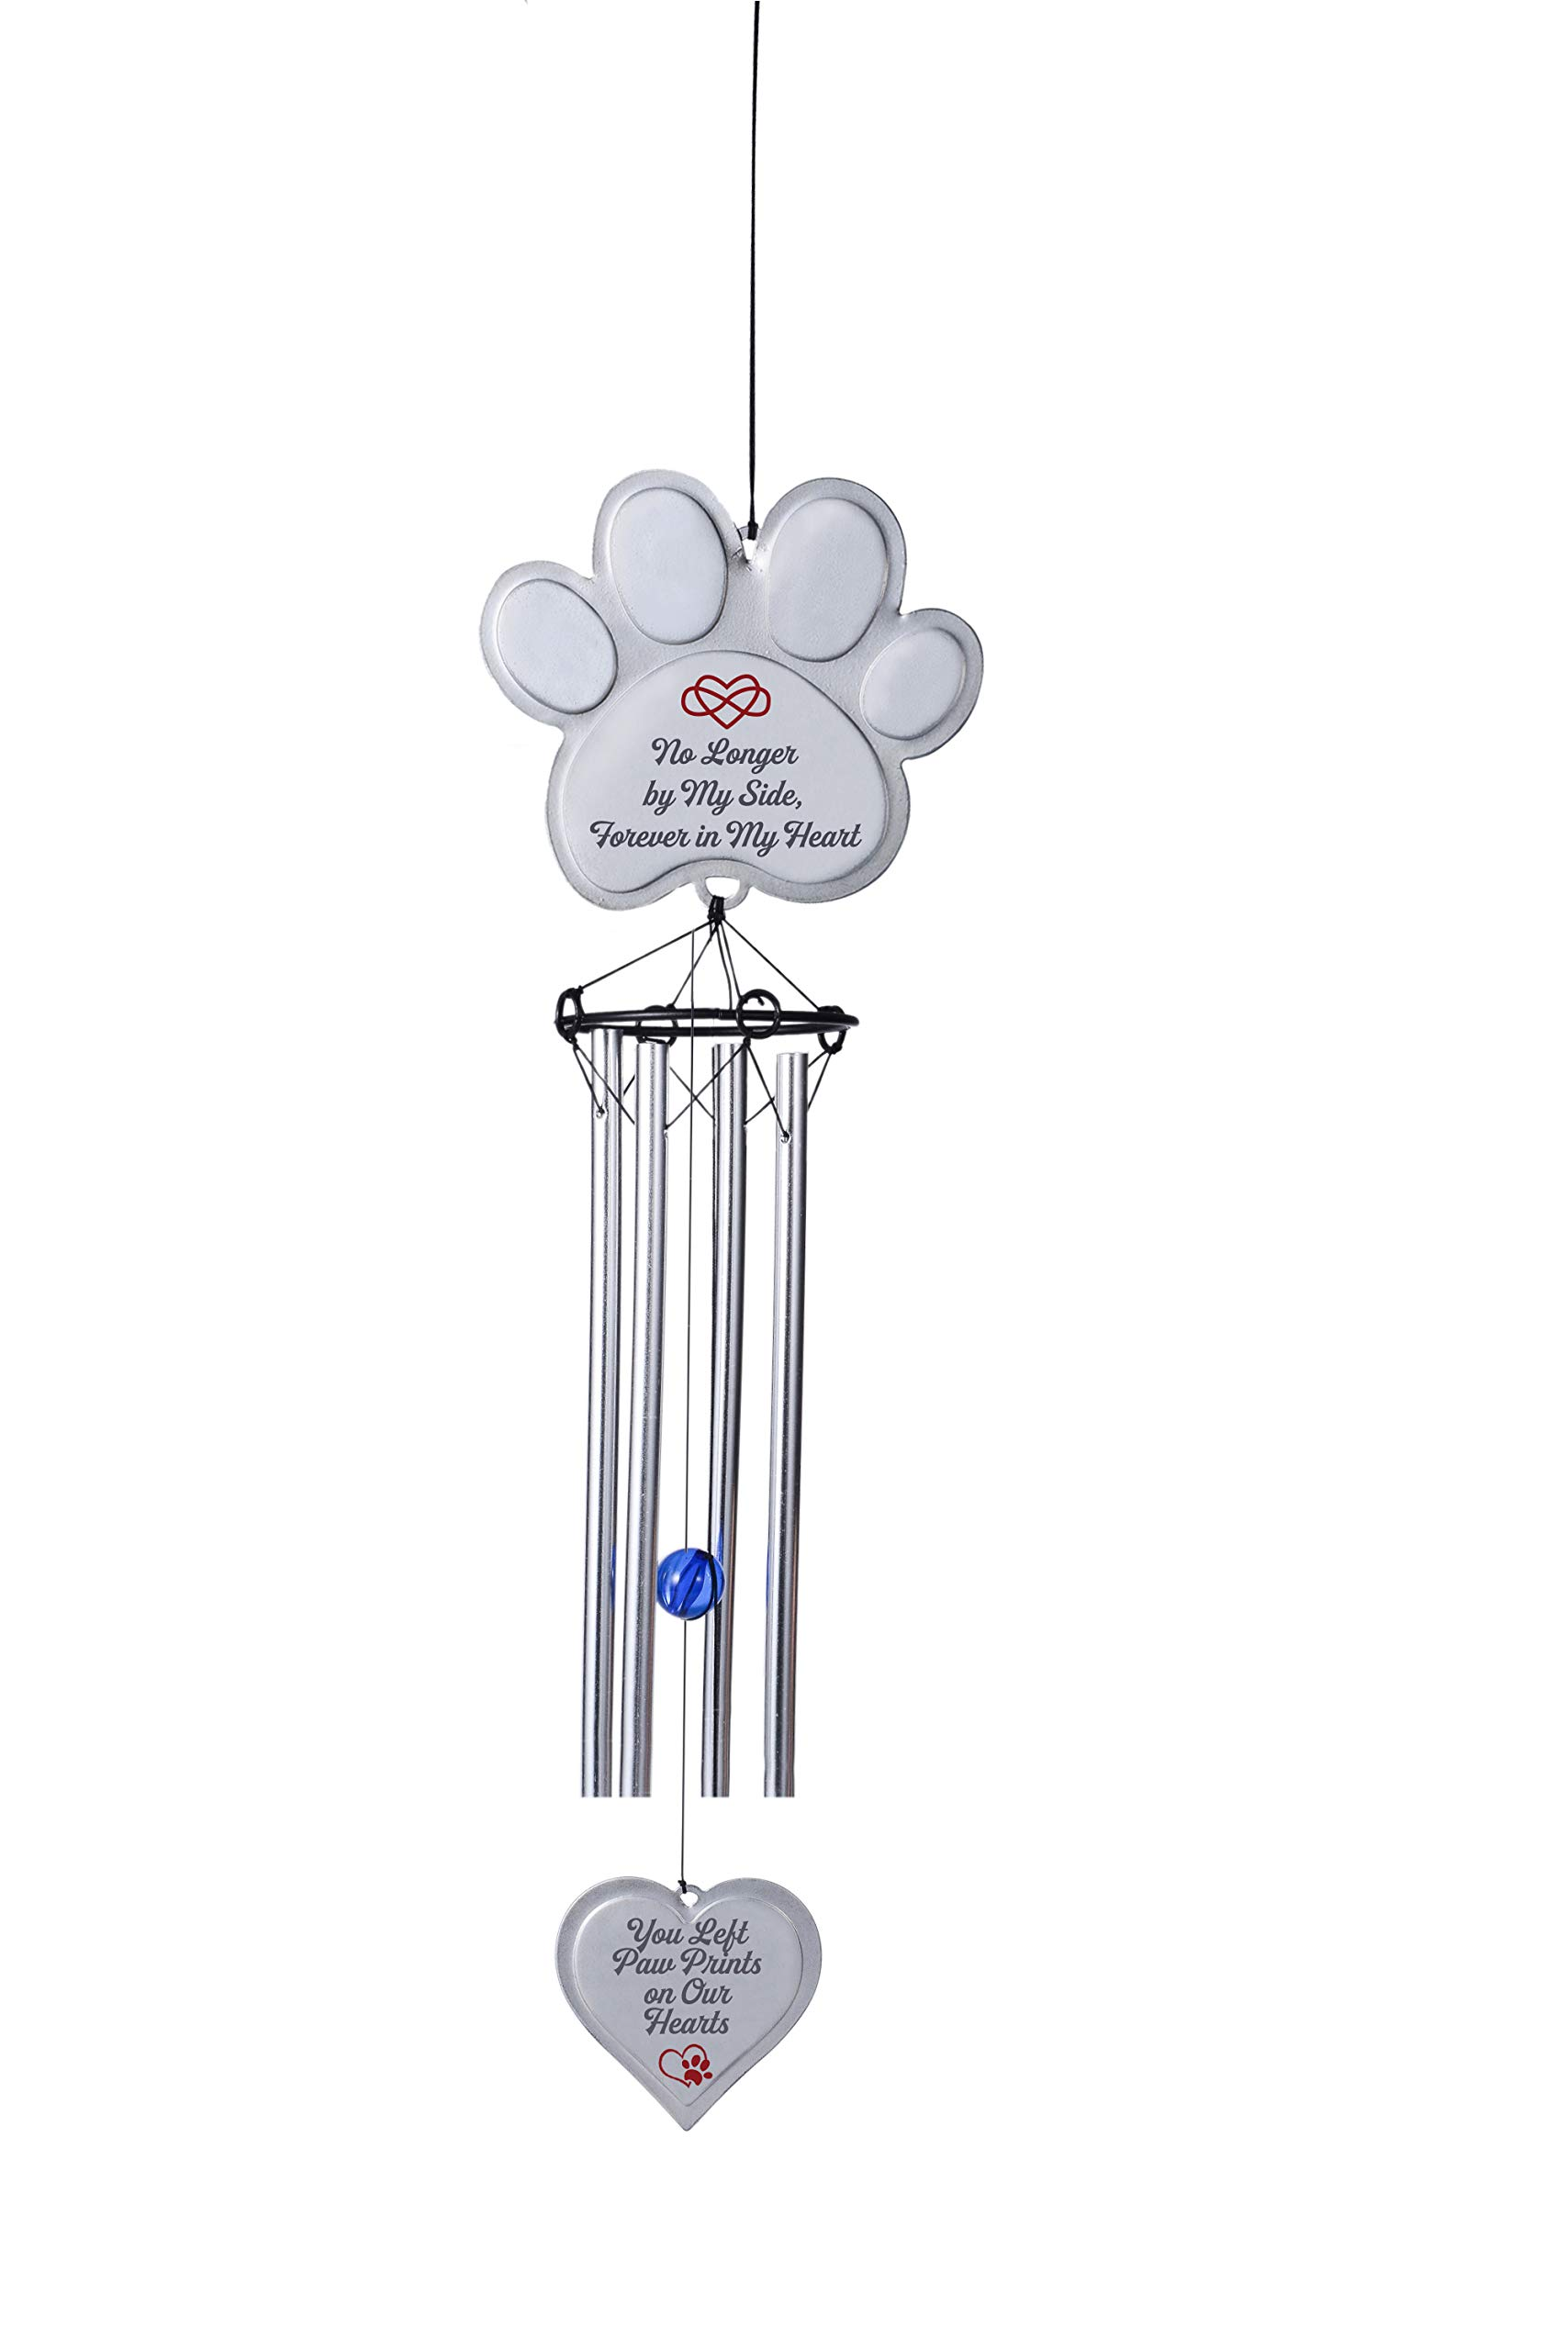 EXPAWLORER Pet Memorial Wind Chime Gifts Pawprint Dog Remembrance Wind Chime with Heart-Shaped Pendant, Pet Loss Gifts, No Longer by My Side, Forever in My Heart